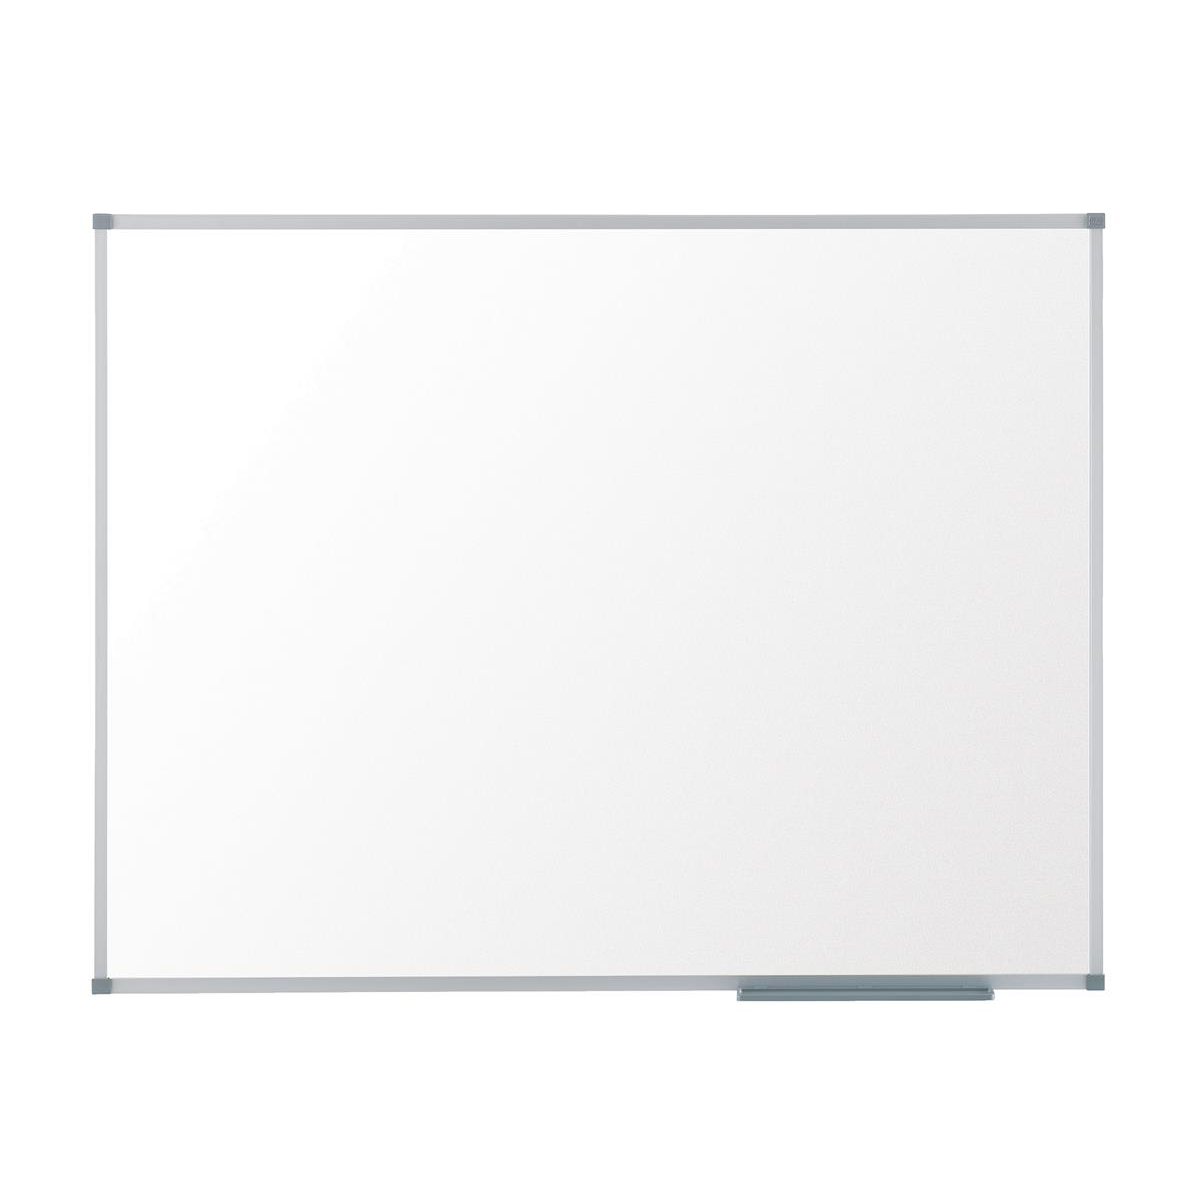 Nobo Classic Nano Clean Drywipe Board Magnetic with Fixings 600x450mm Aluminium Ref 1902641